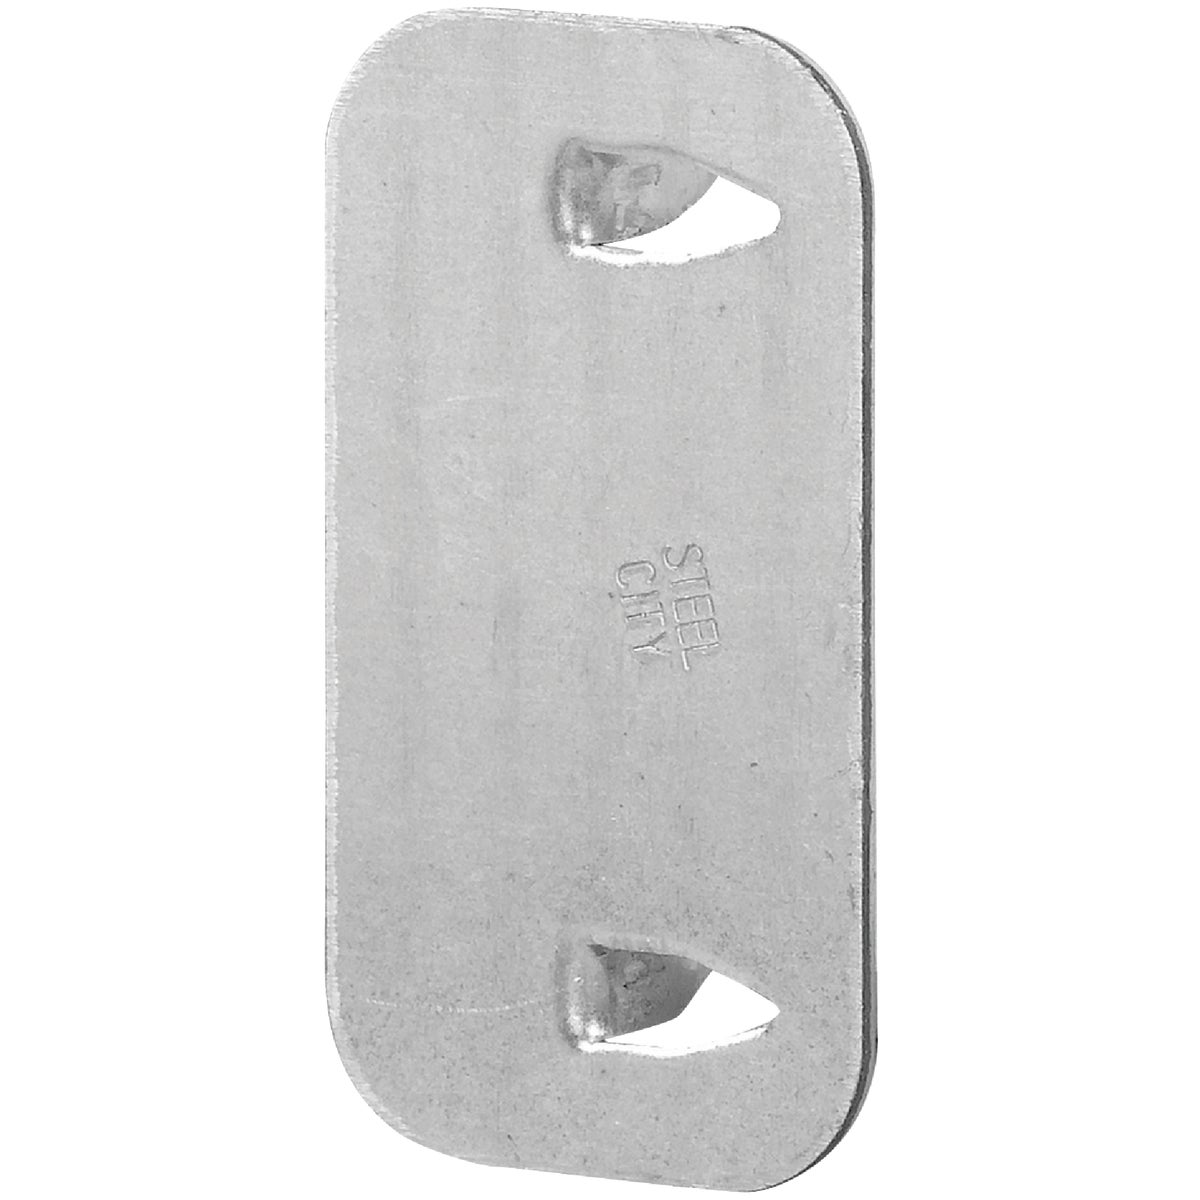 Cable Protector Plate